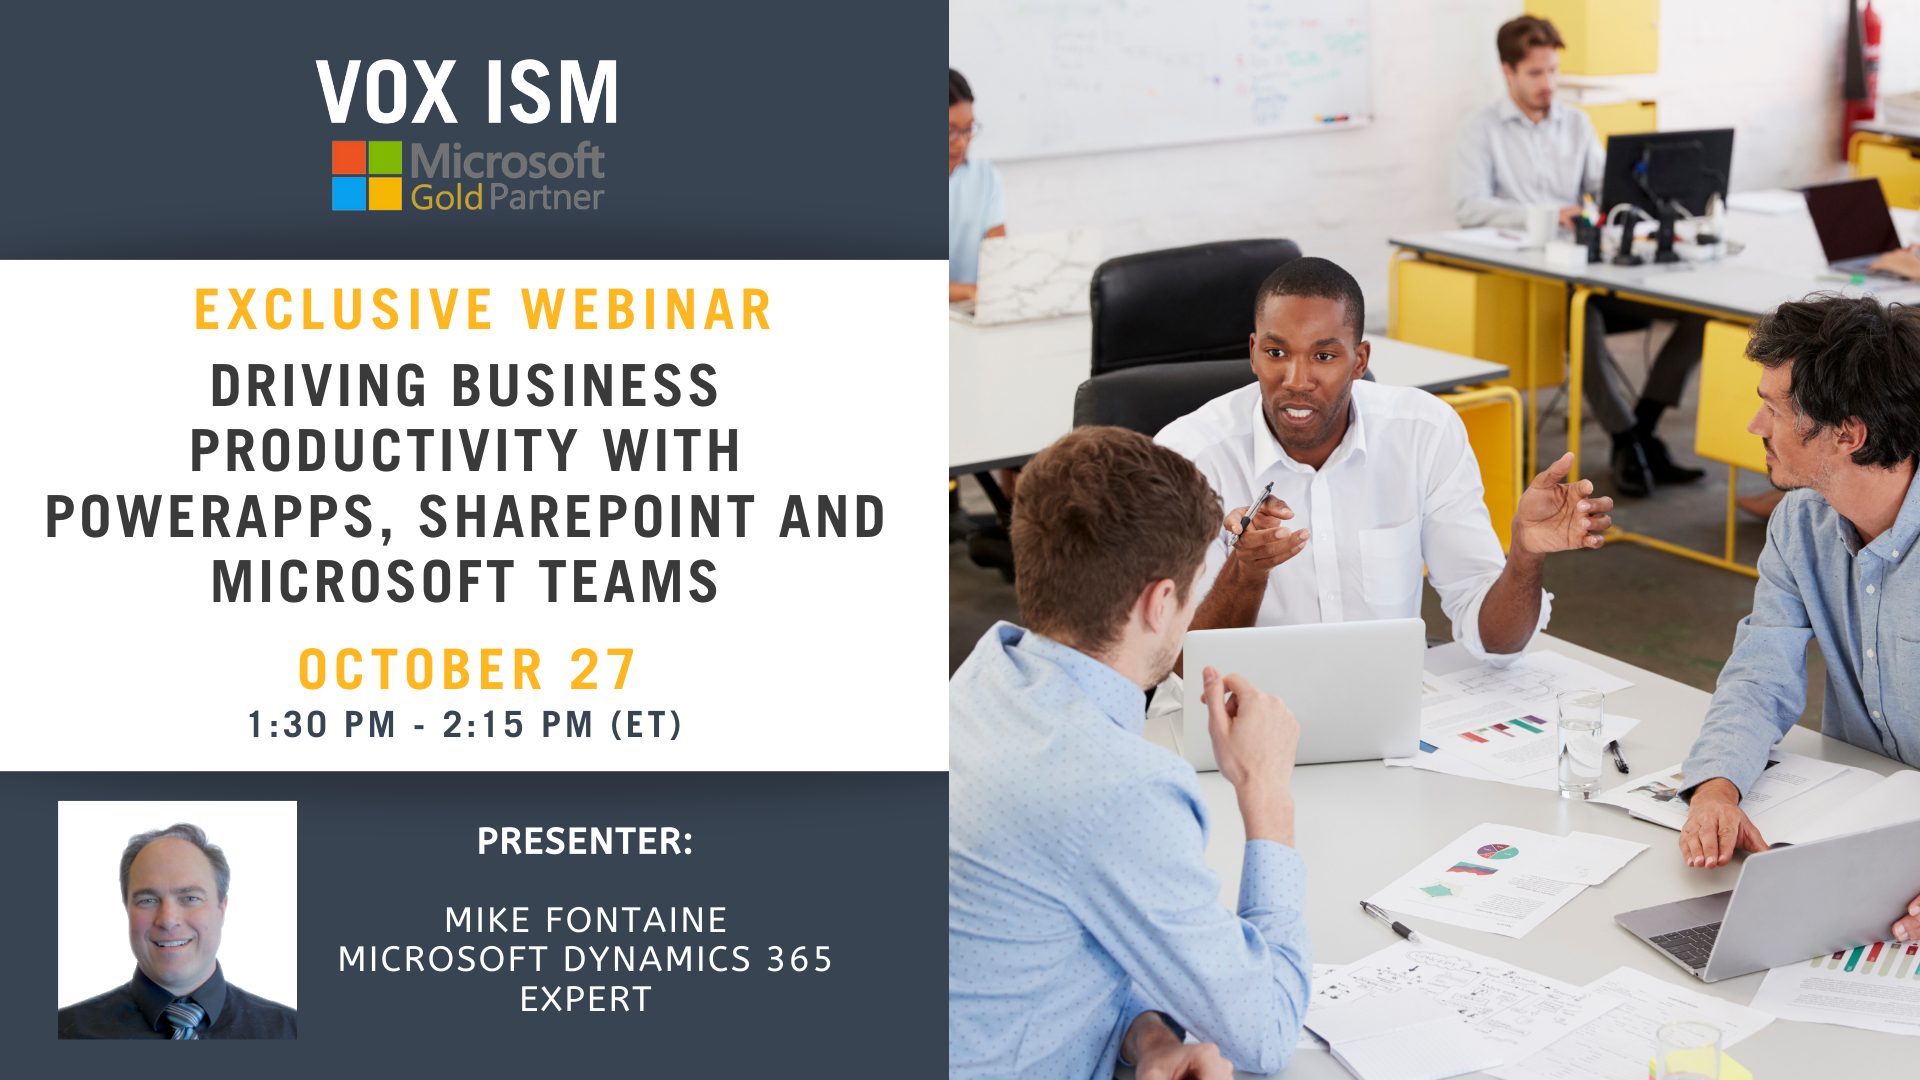 Driving business productivity with PowerApps, Microsoft Teams and SharePoint - October 27 - Webinar